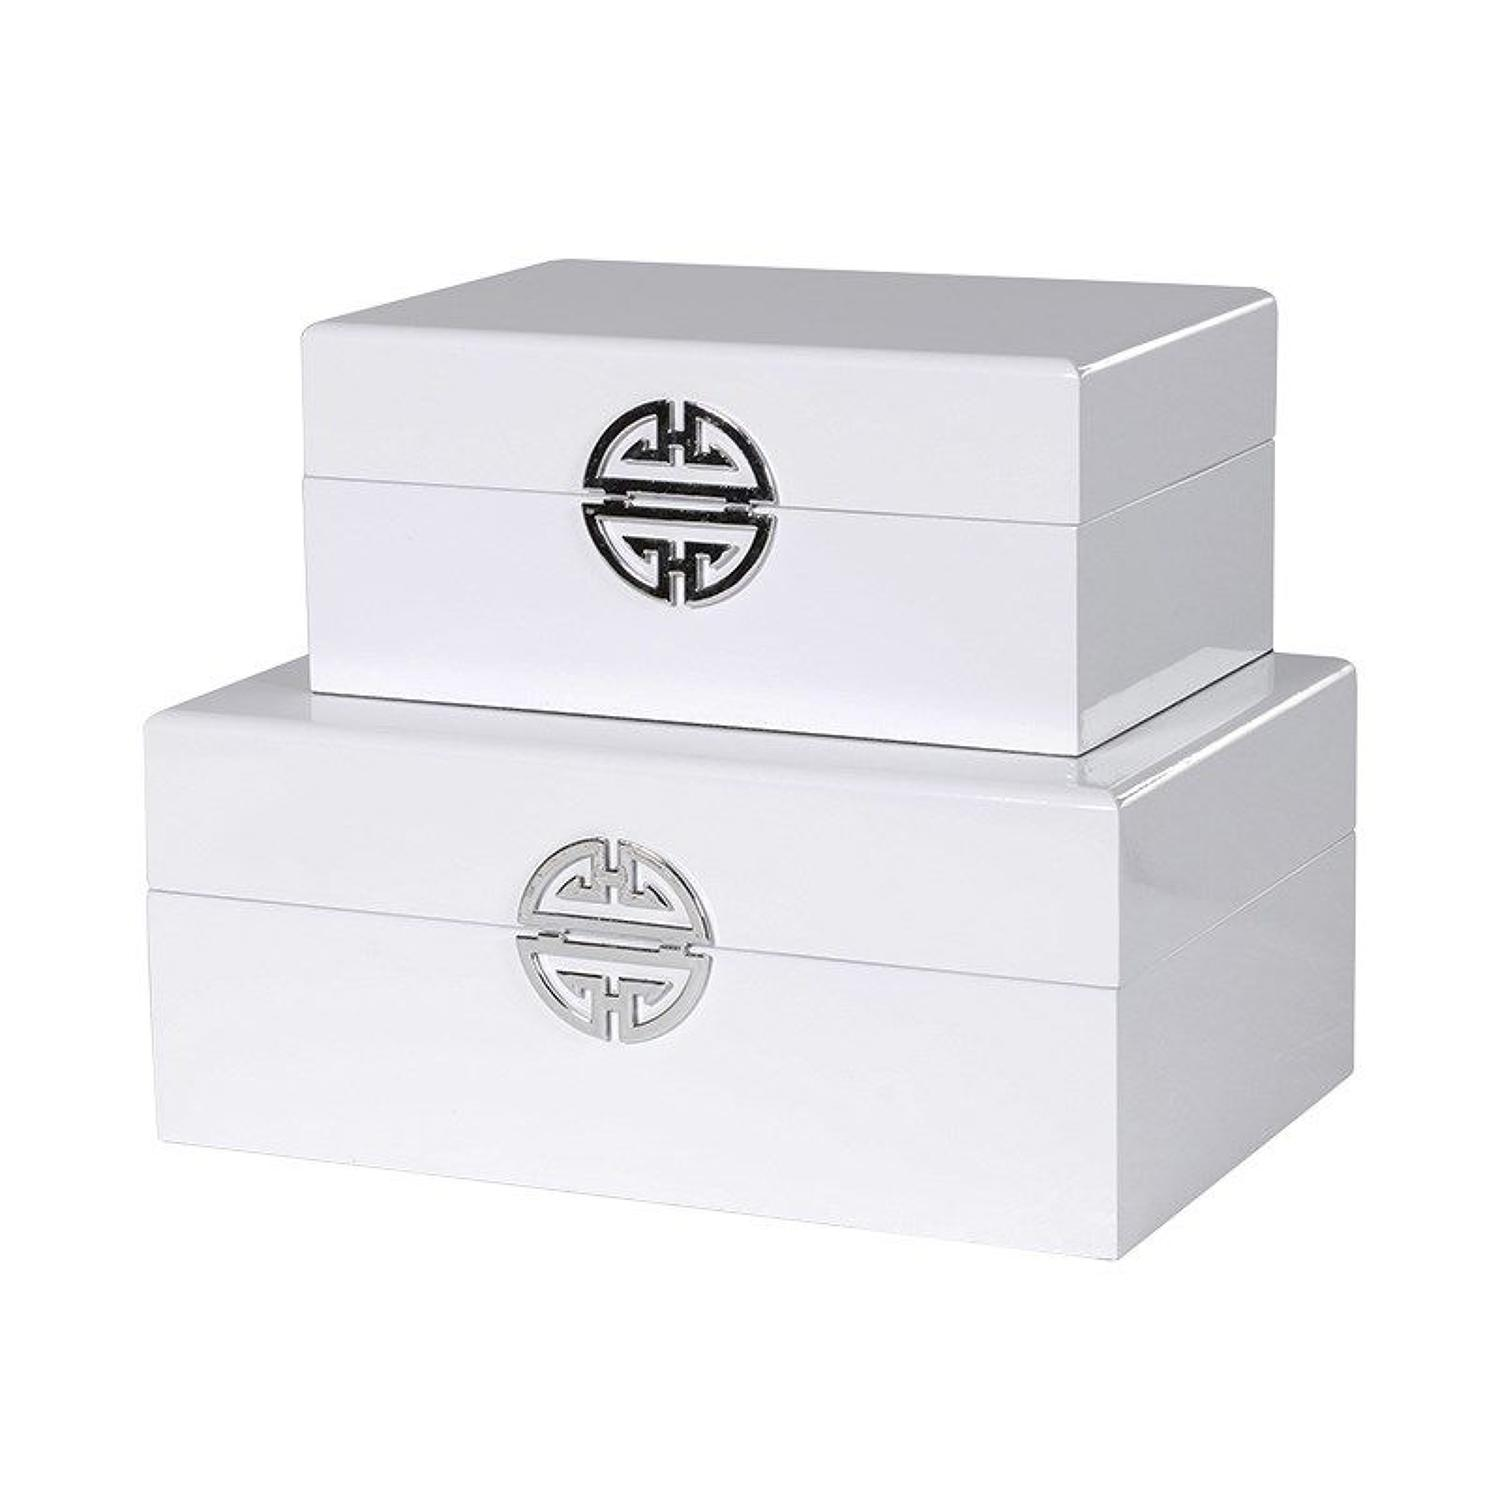 Pair of white high gloss, wooden boxes with silver detailing